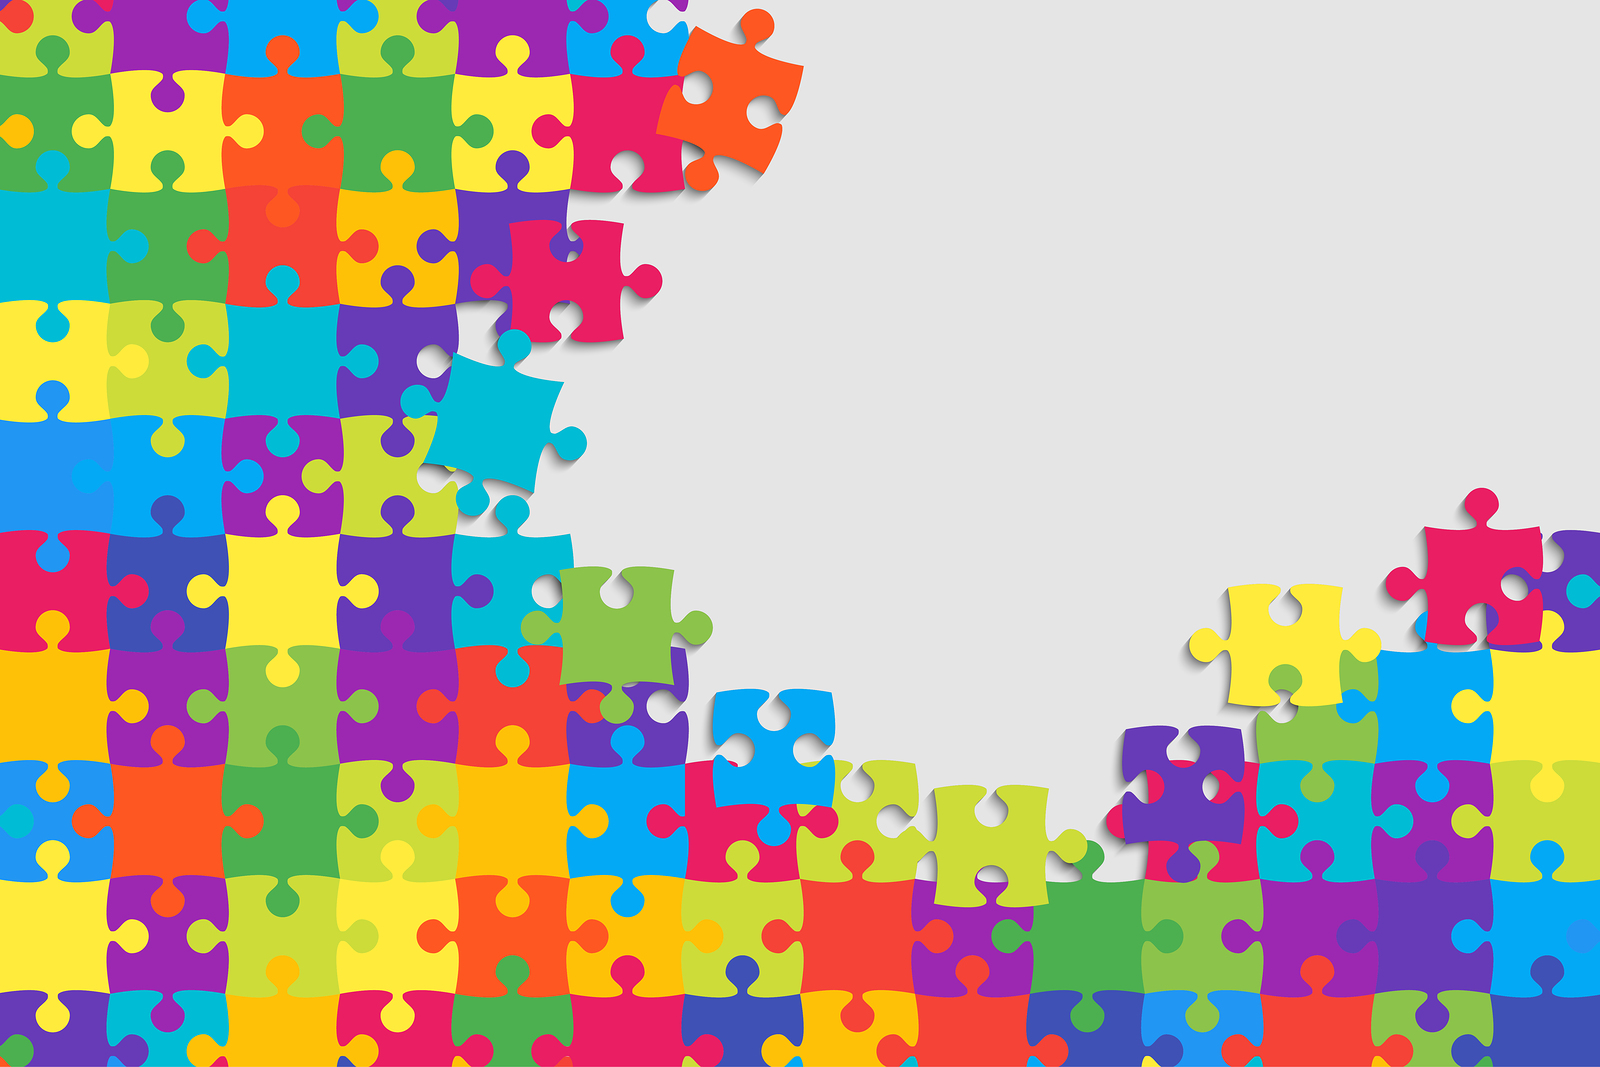 Colorful Background Puzzle. Infographic Presentation. Jigsaw Puz